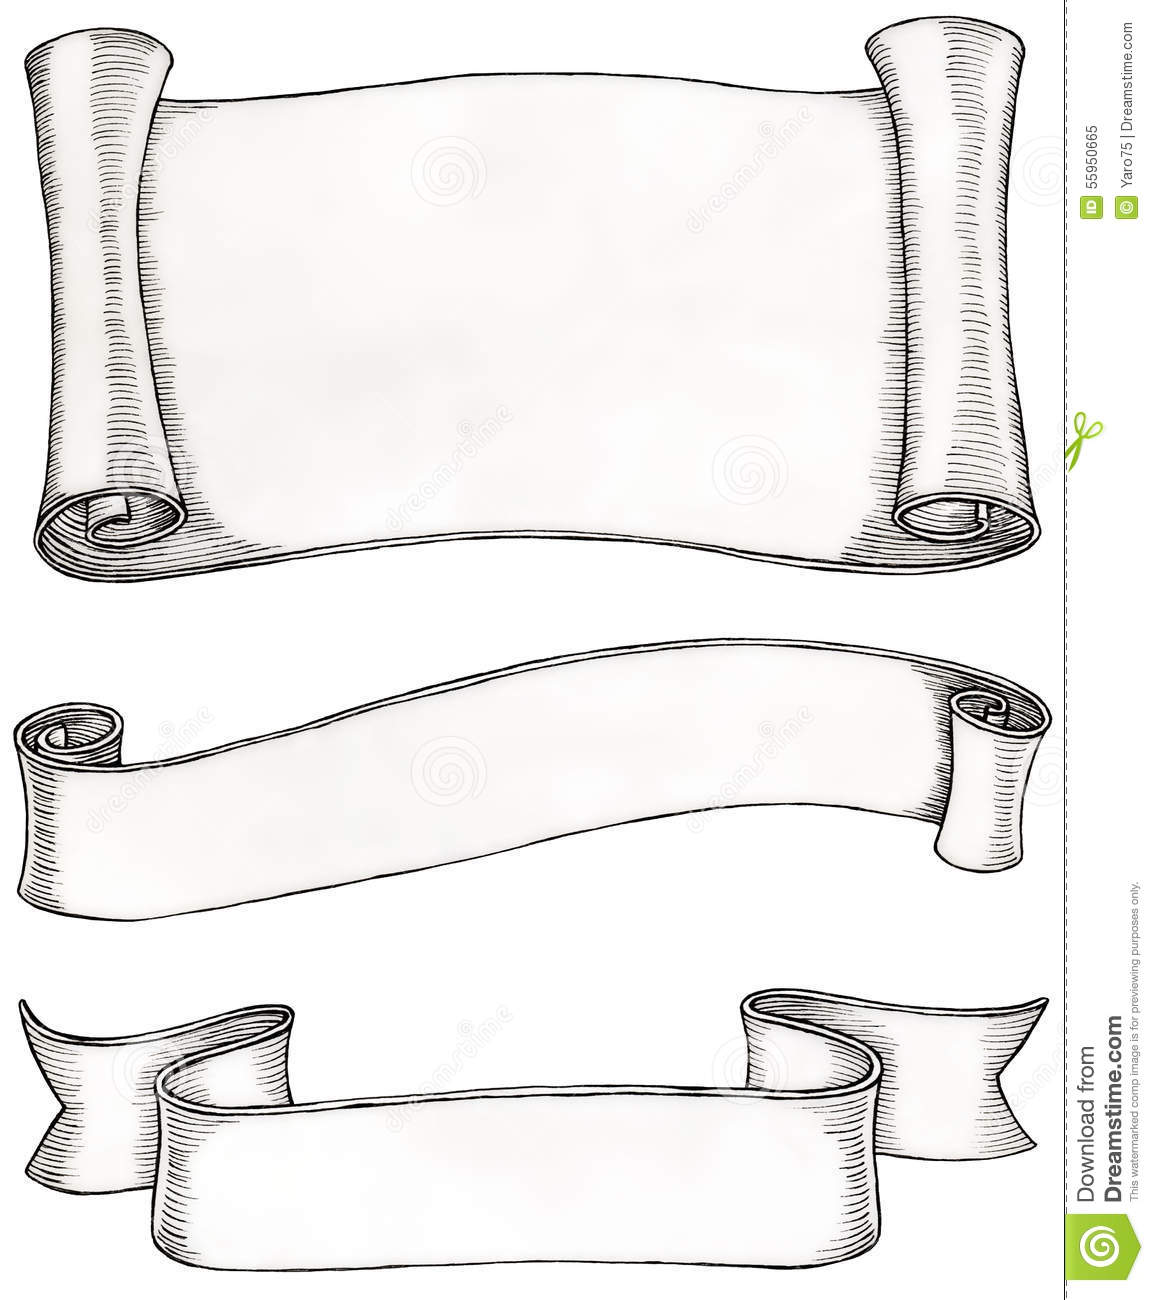 Scroll Drawing: Frames Stock Illustration. Image Of Letter, Clipping